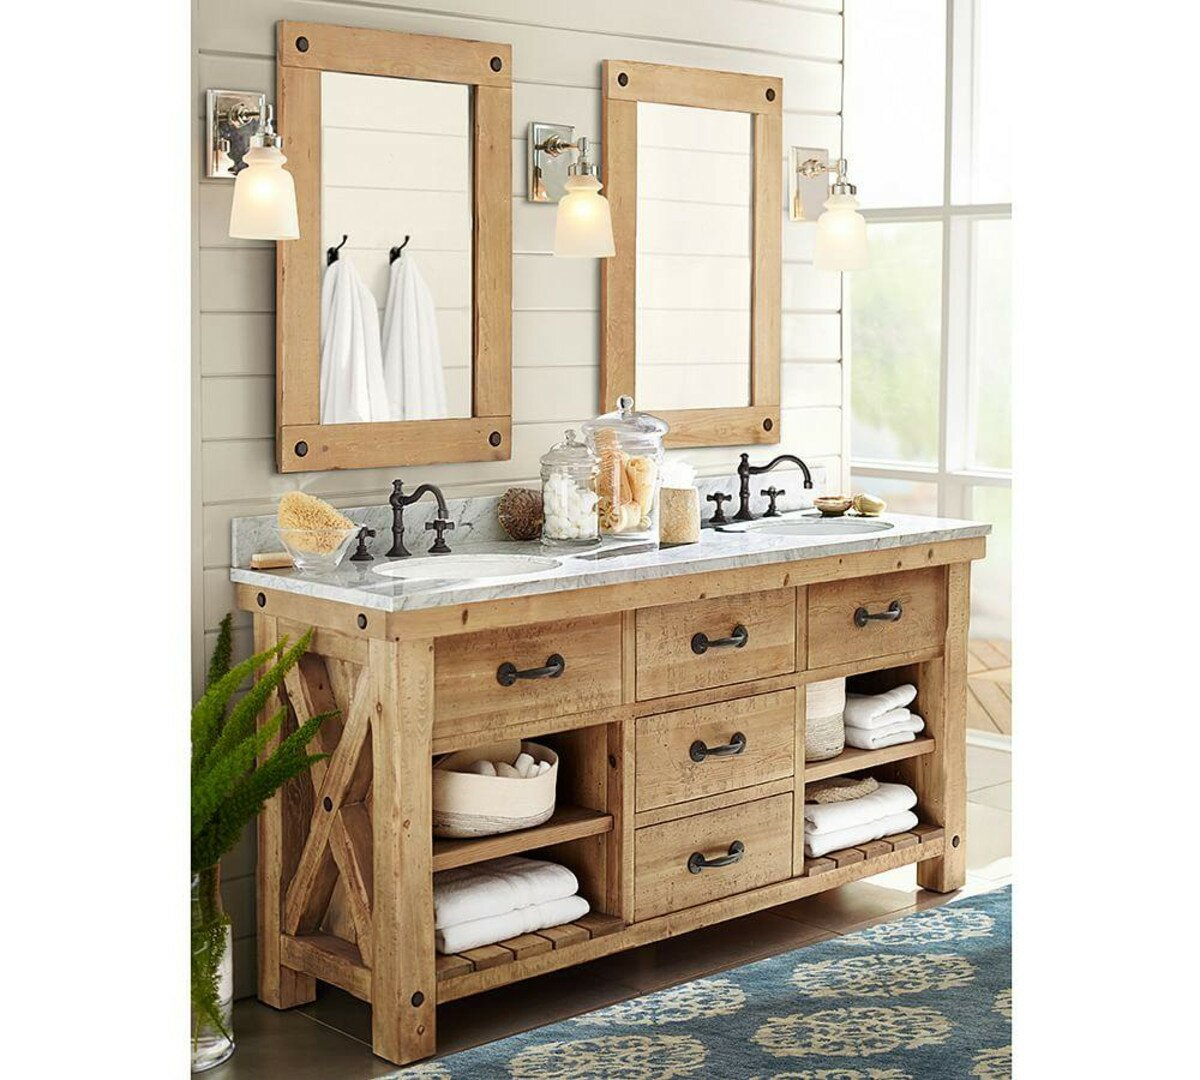 Bathroom Vanities with Sinks | Pottery Barn Vanity | Bathrrom Vanity